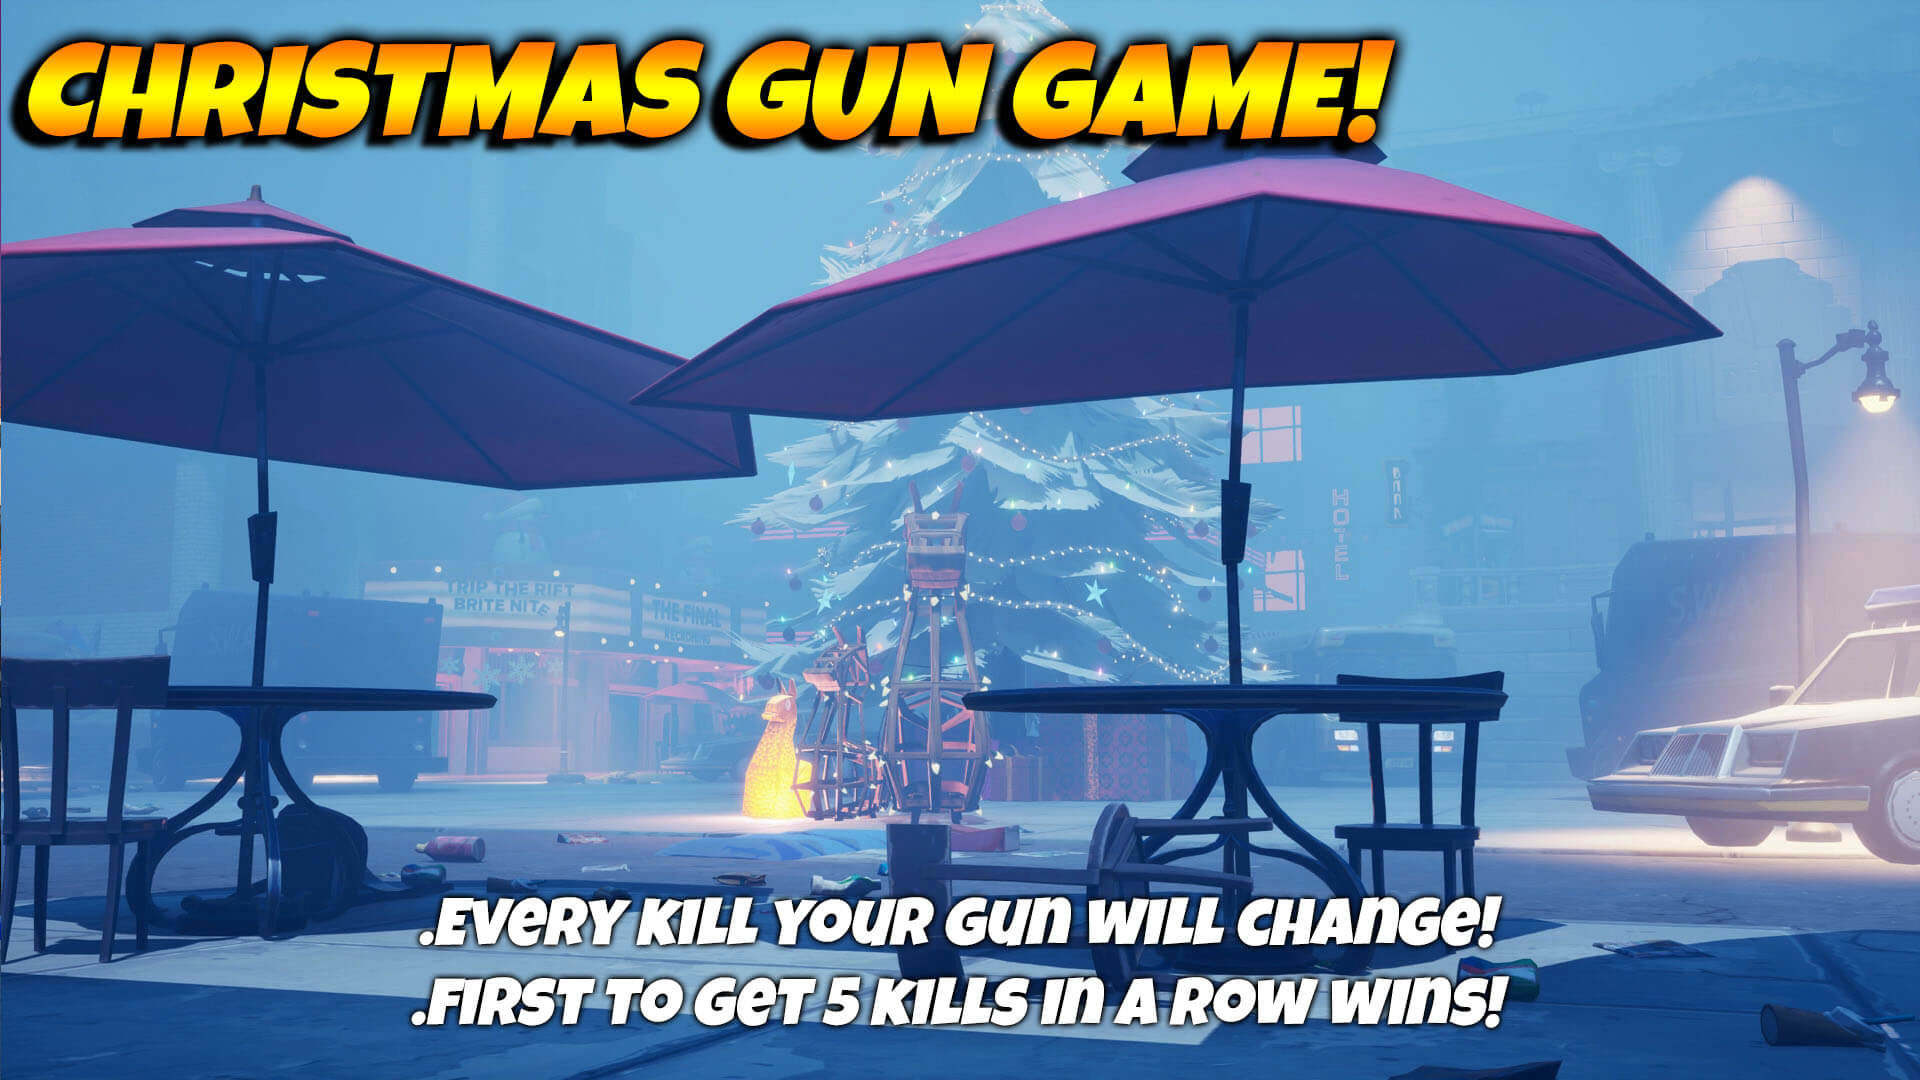 GUN GAME! - CYNICAL CITY CHRISTMAS!